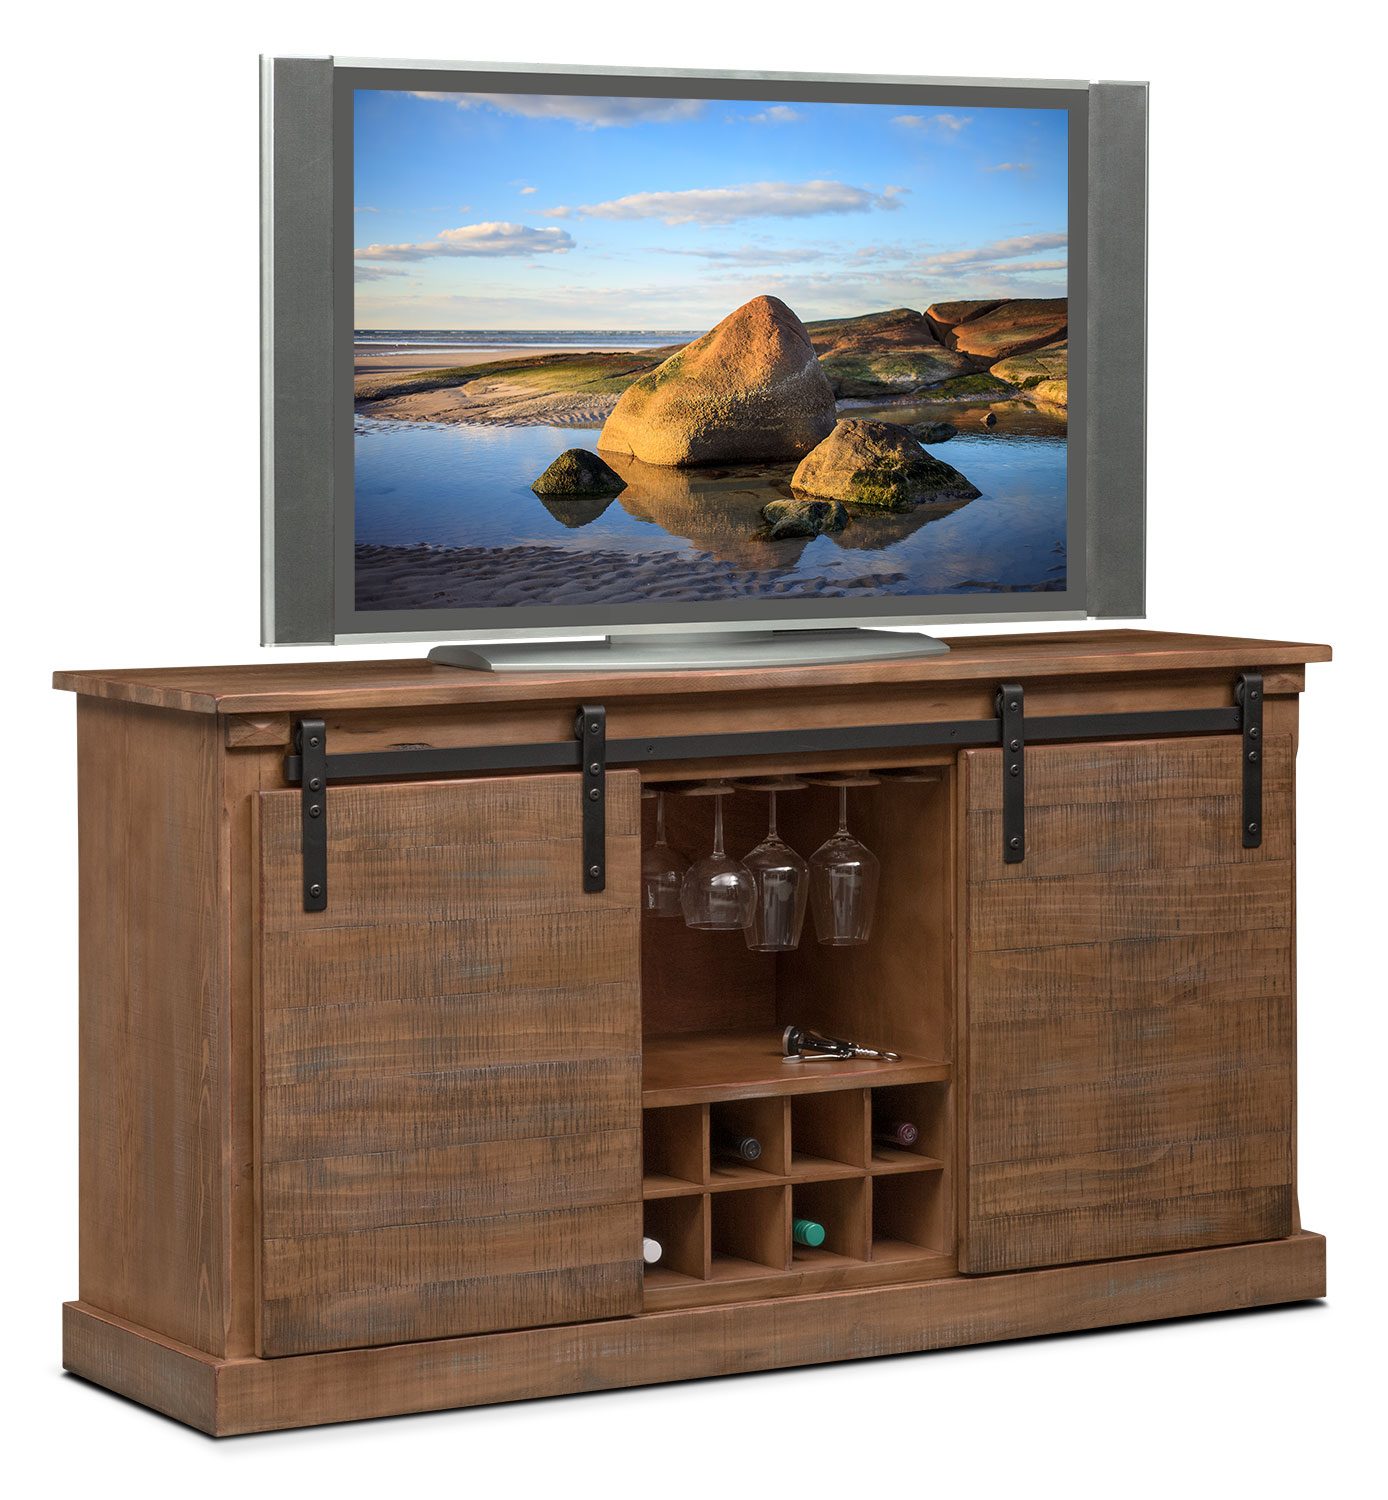 Ashcroft Media Credenza with Wine Storage - Driftwood